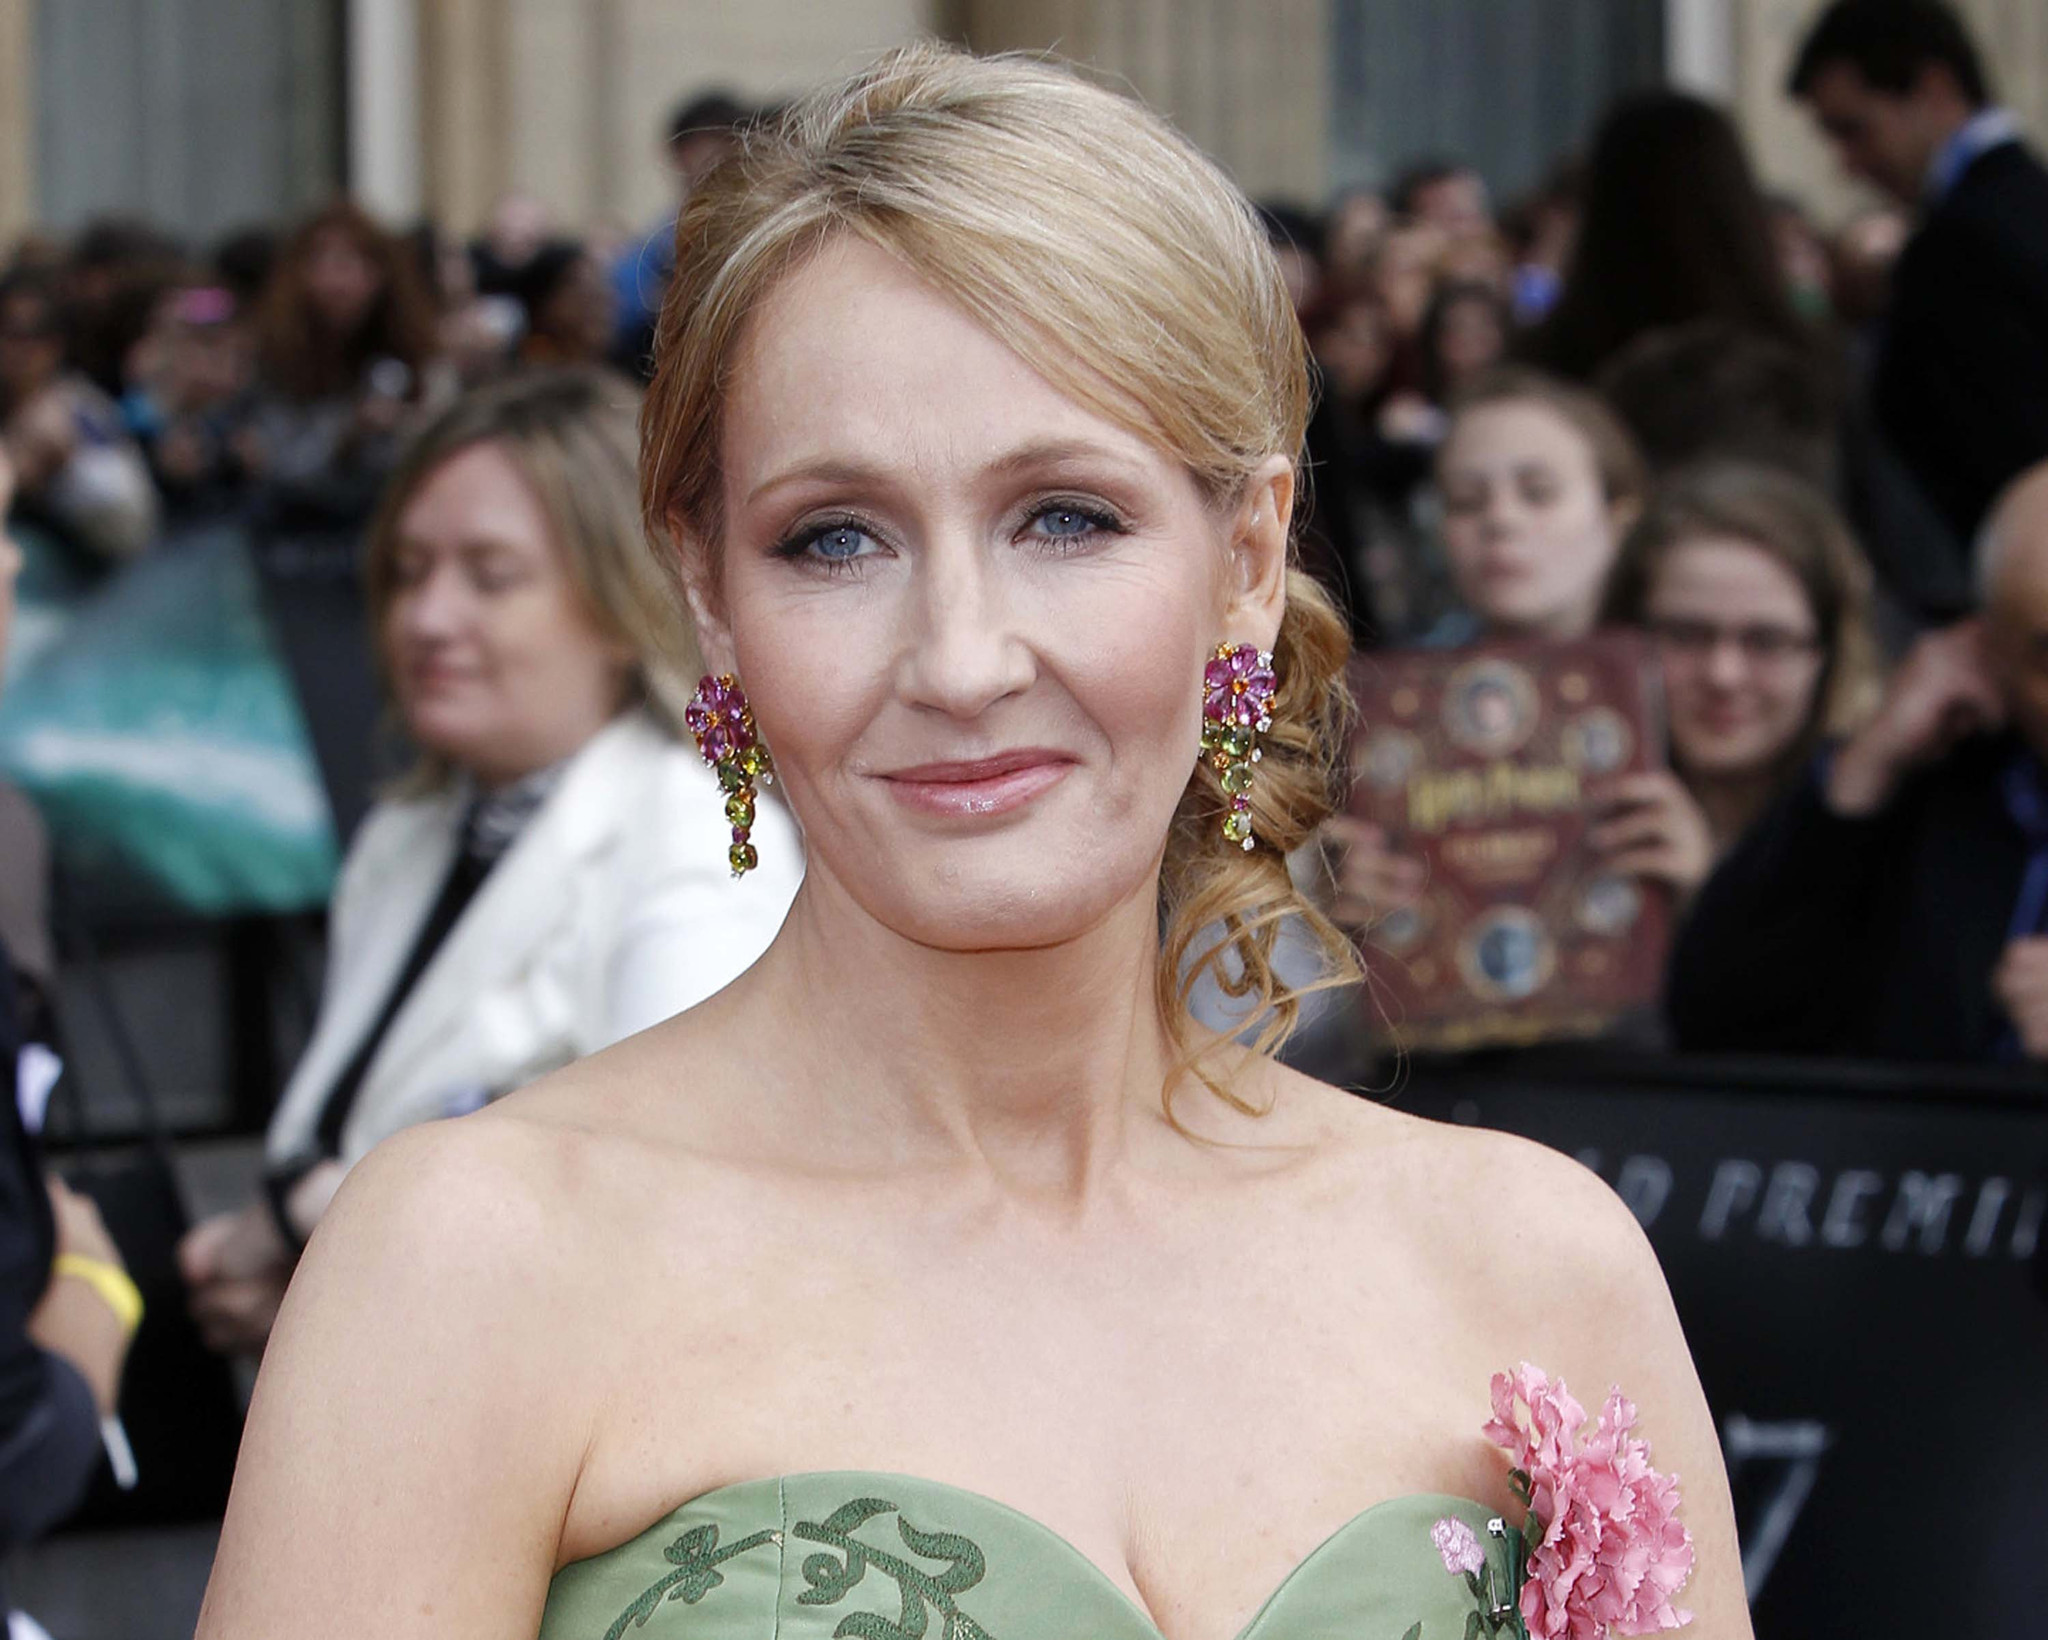 rowdy j k rowling reveals graffiti ing of hotel statue after rowdy j k rowling reveals graffiti ing of hotel statue after she finished harry potter la times